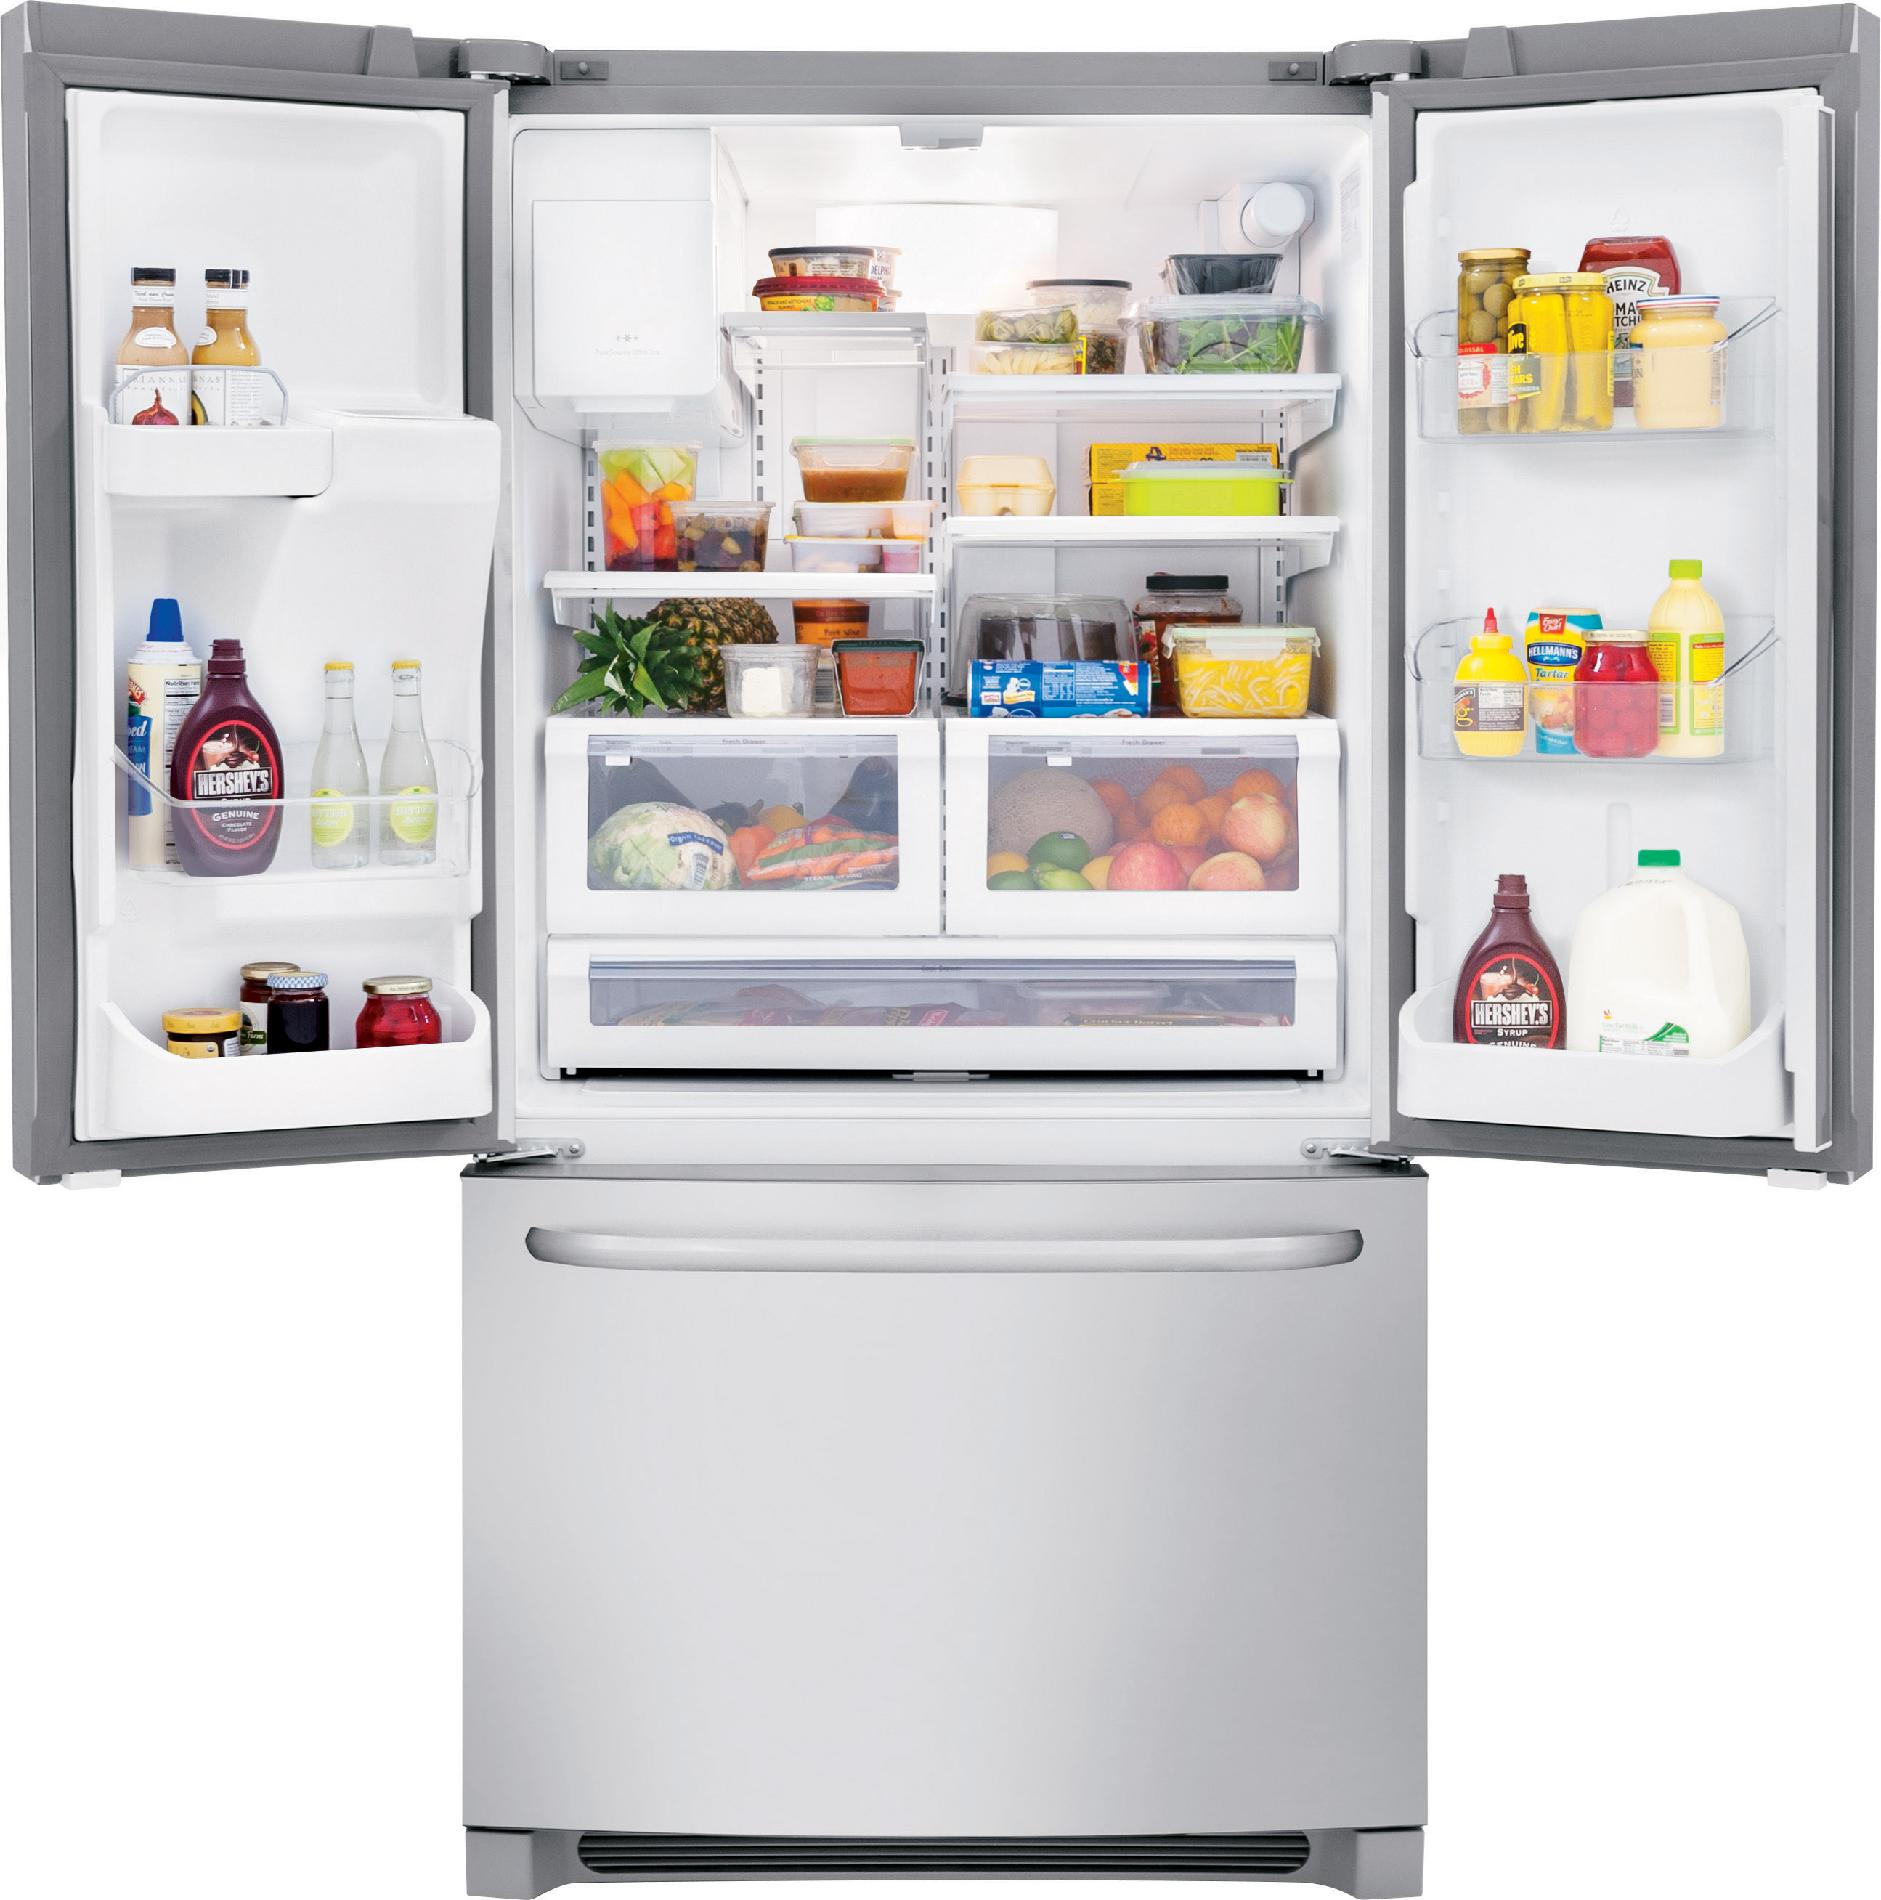 Frigidaire FFHB2740PS 26.7 cu. ft. French Door Refrigerator - Stainless Steel